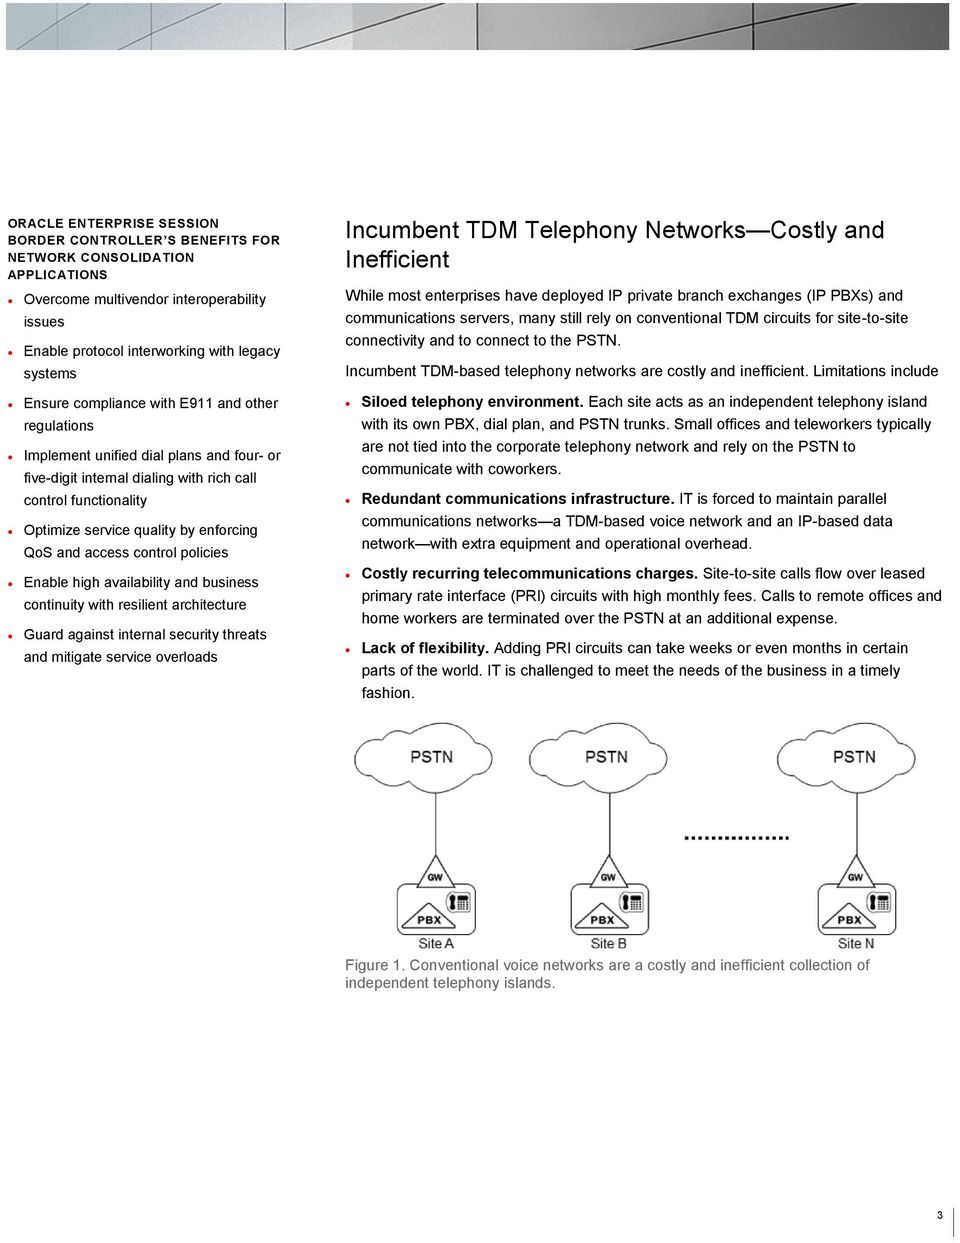 site-to-site connectivity and to connect to the PSTN. Incumbent TDM-based telephony networks are costly and inefficient.